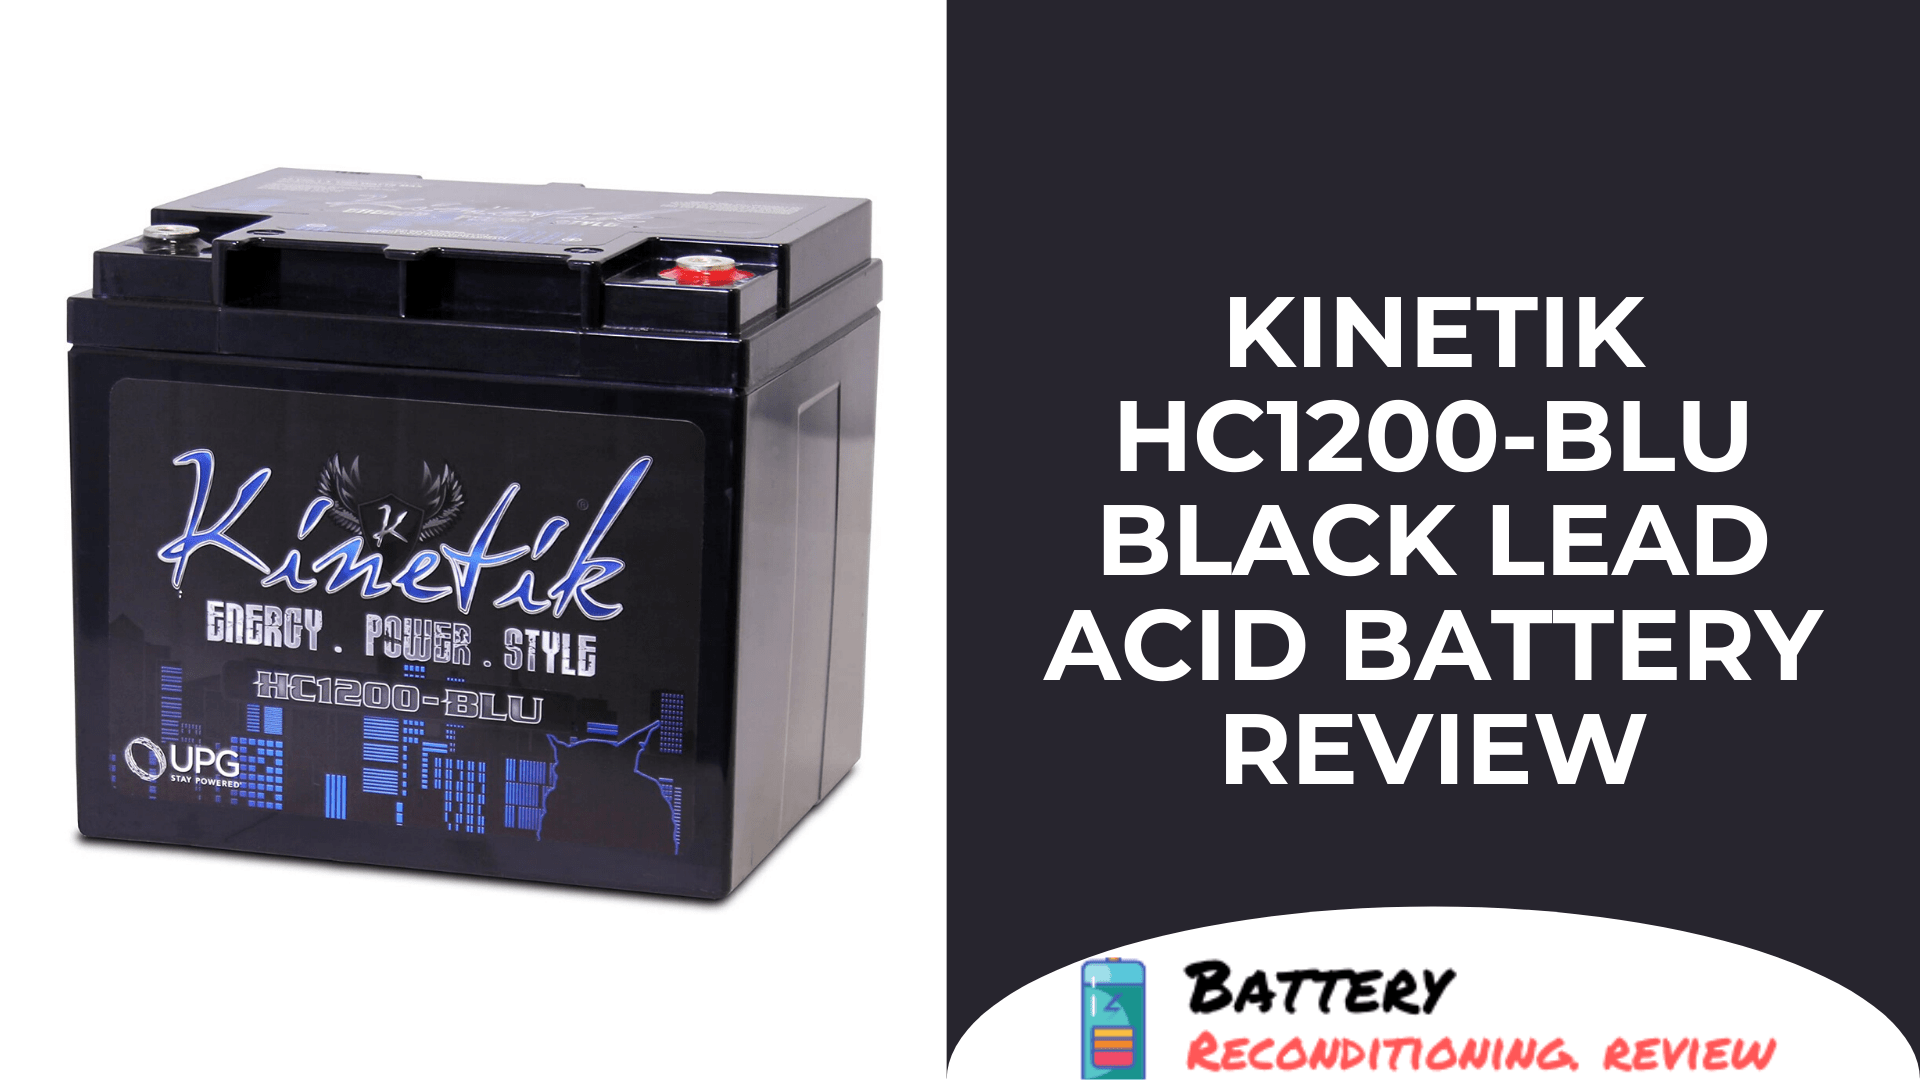 Kinetik HC1200-BLU Black Lead Acid Battery Review